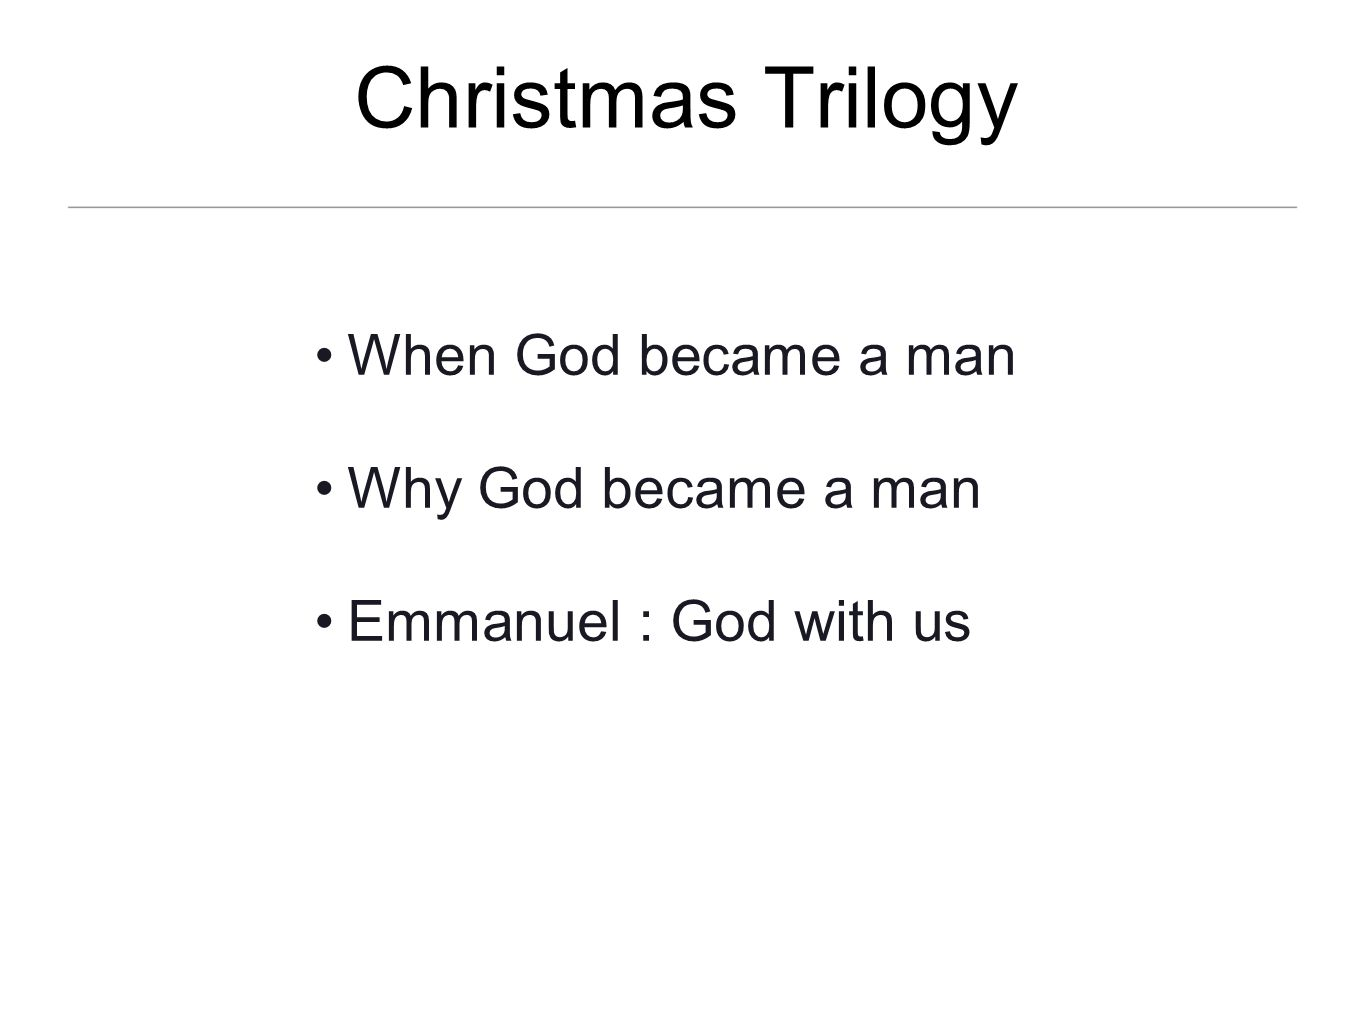 Christmas Trilogy When God became a man Why God became a man